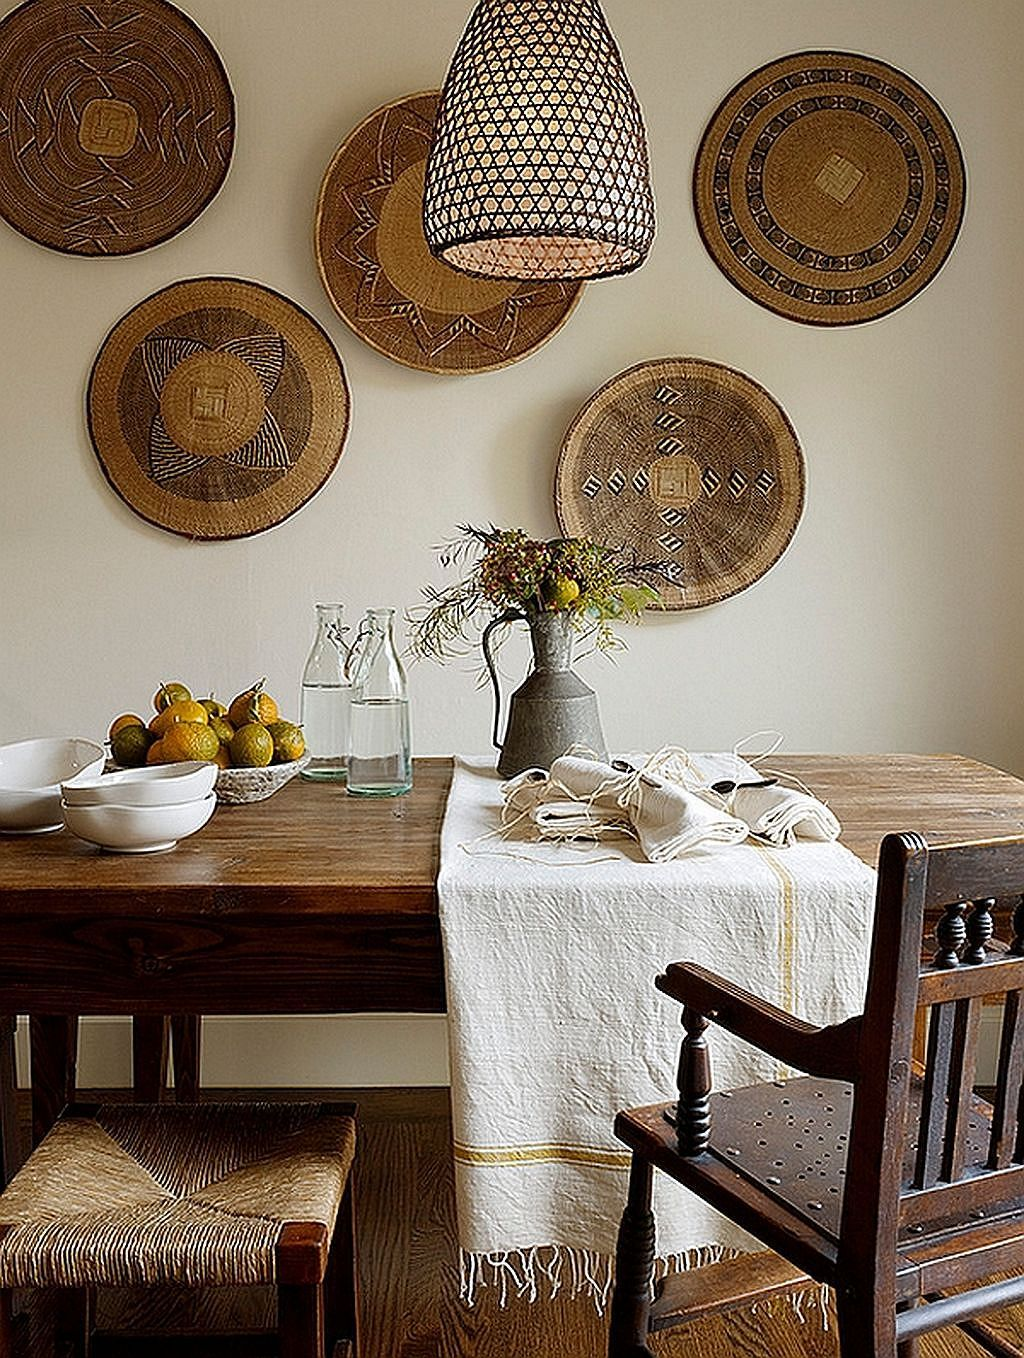 50 Creative Modern Decor With Afrocentric African Style Ideas Deco Deco Africaine Deco Ethnique African decor dining room